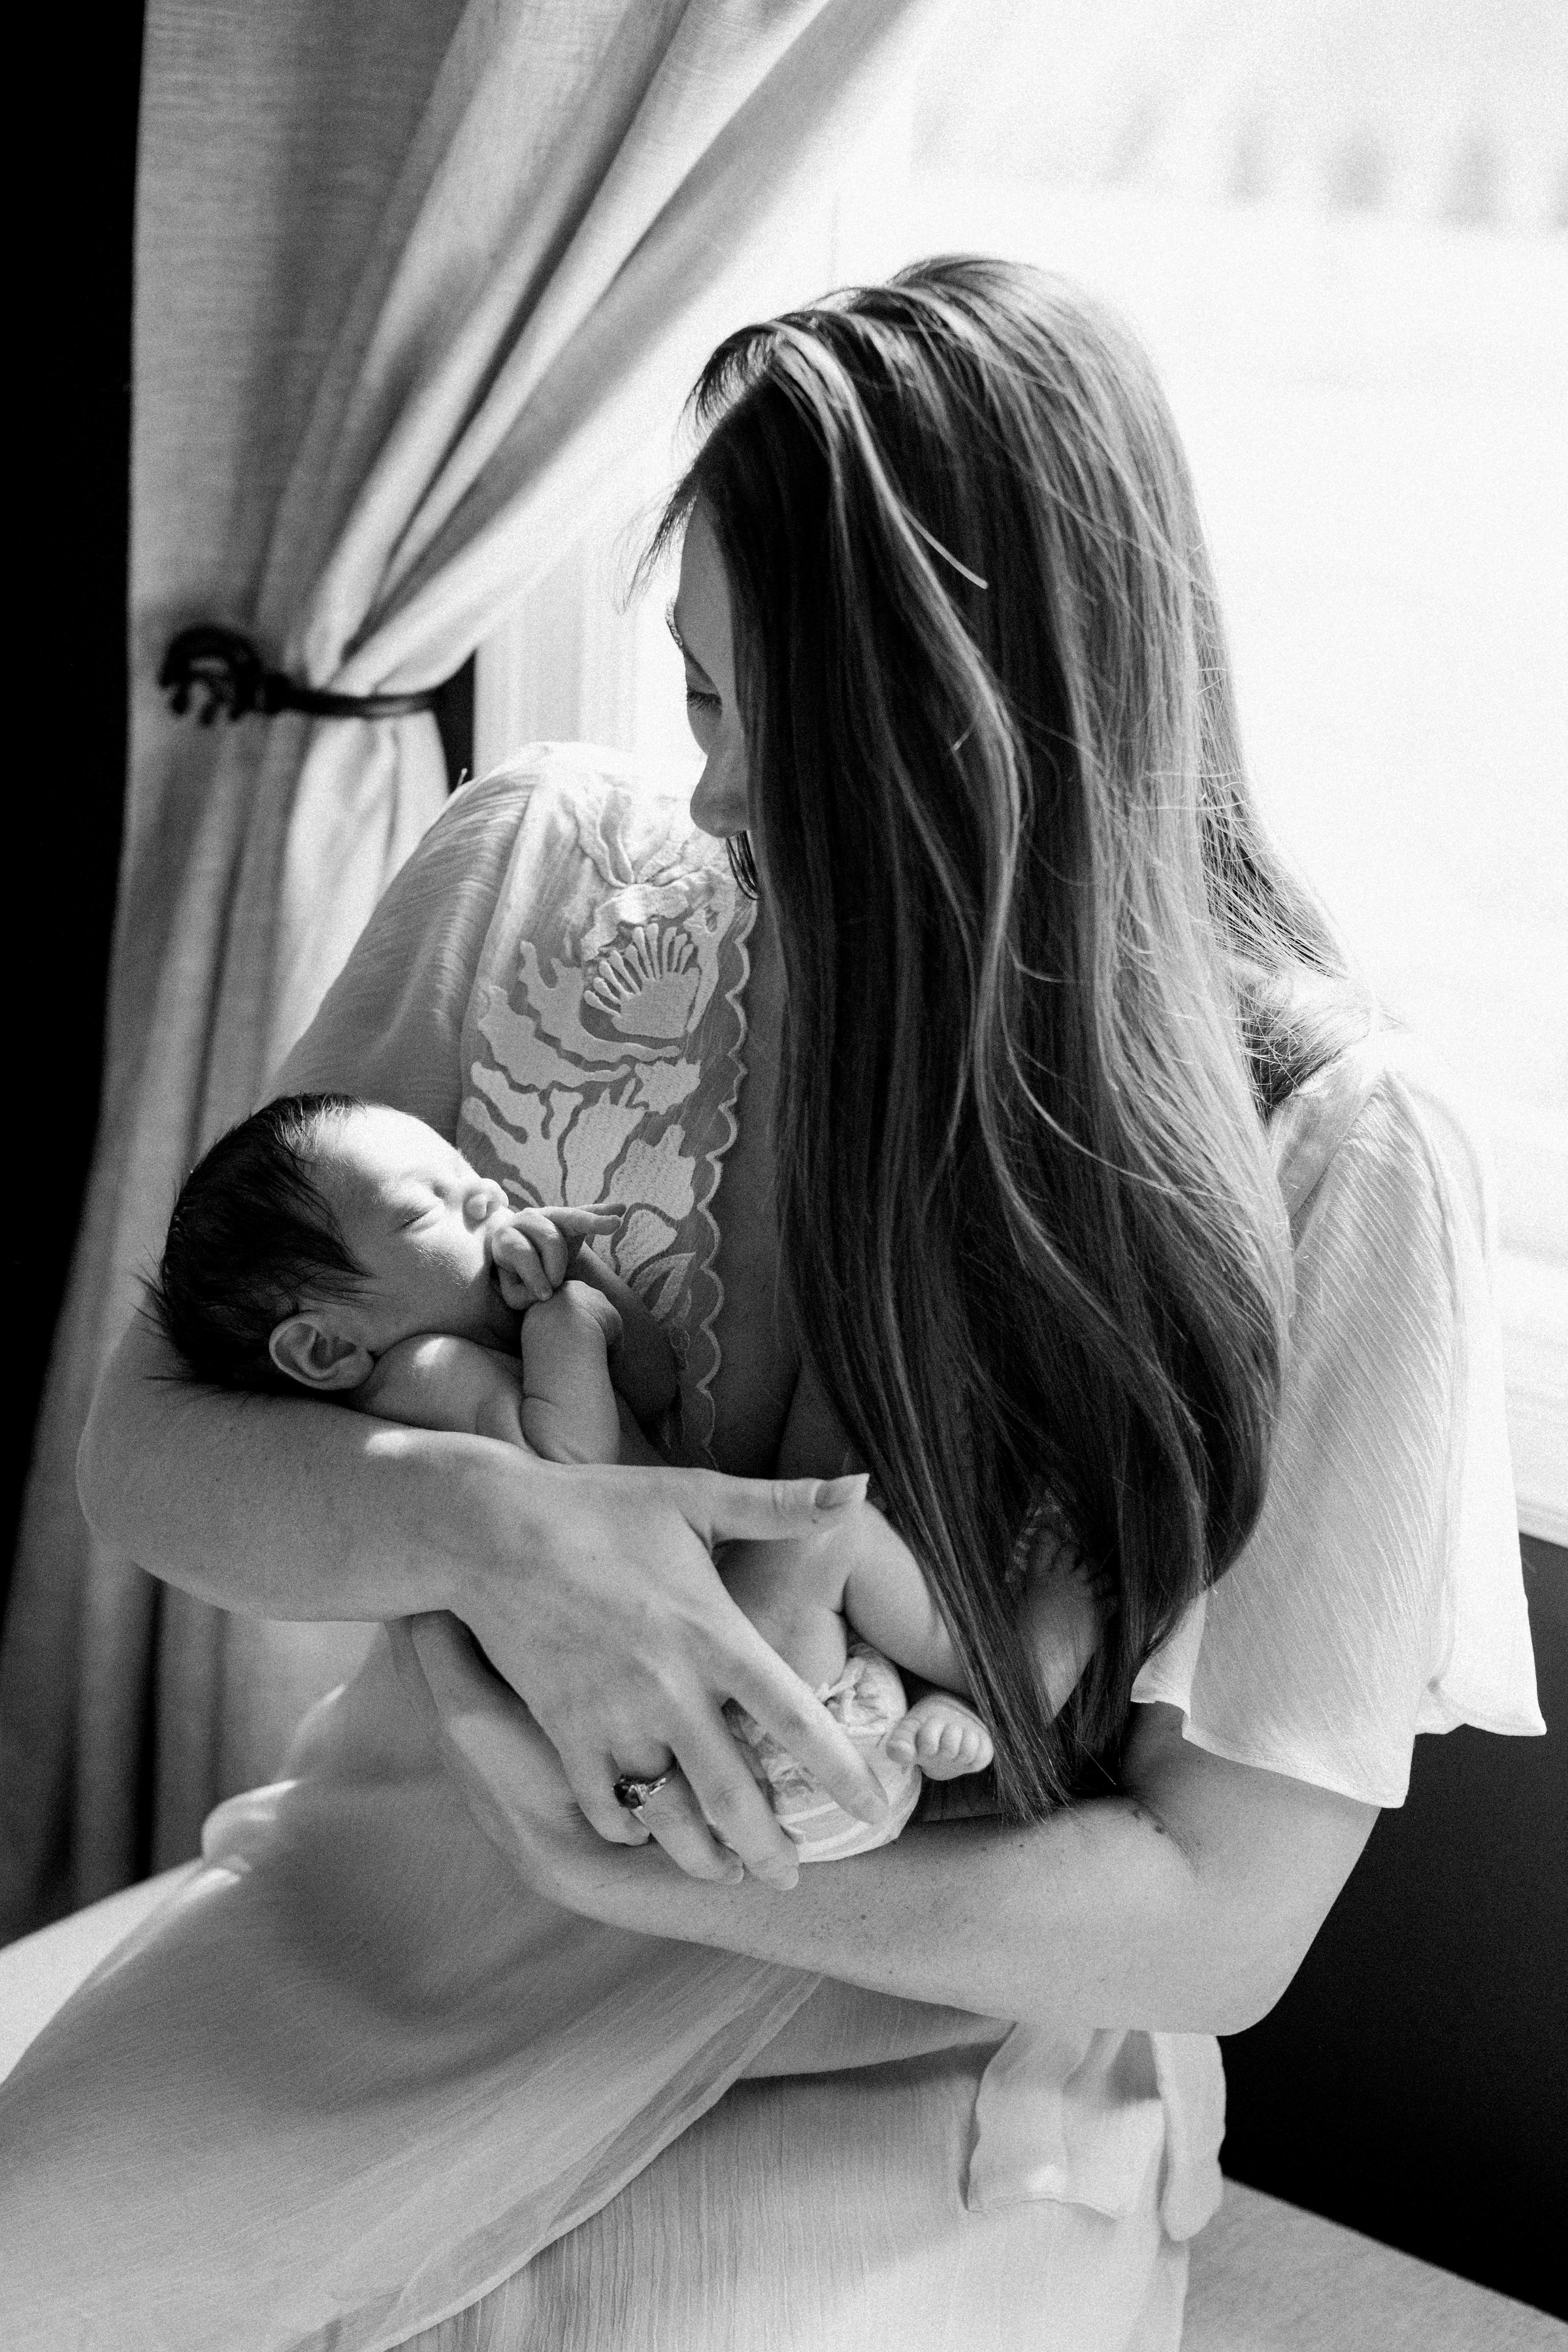 April is C-section awareness month and NY blogger, Christine Covino, is sharing her story and tips for battling the shame that comes with unplanned cesareans.